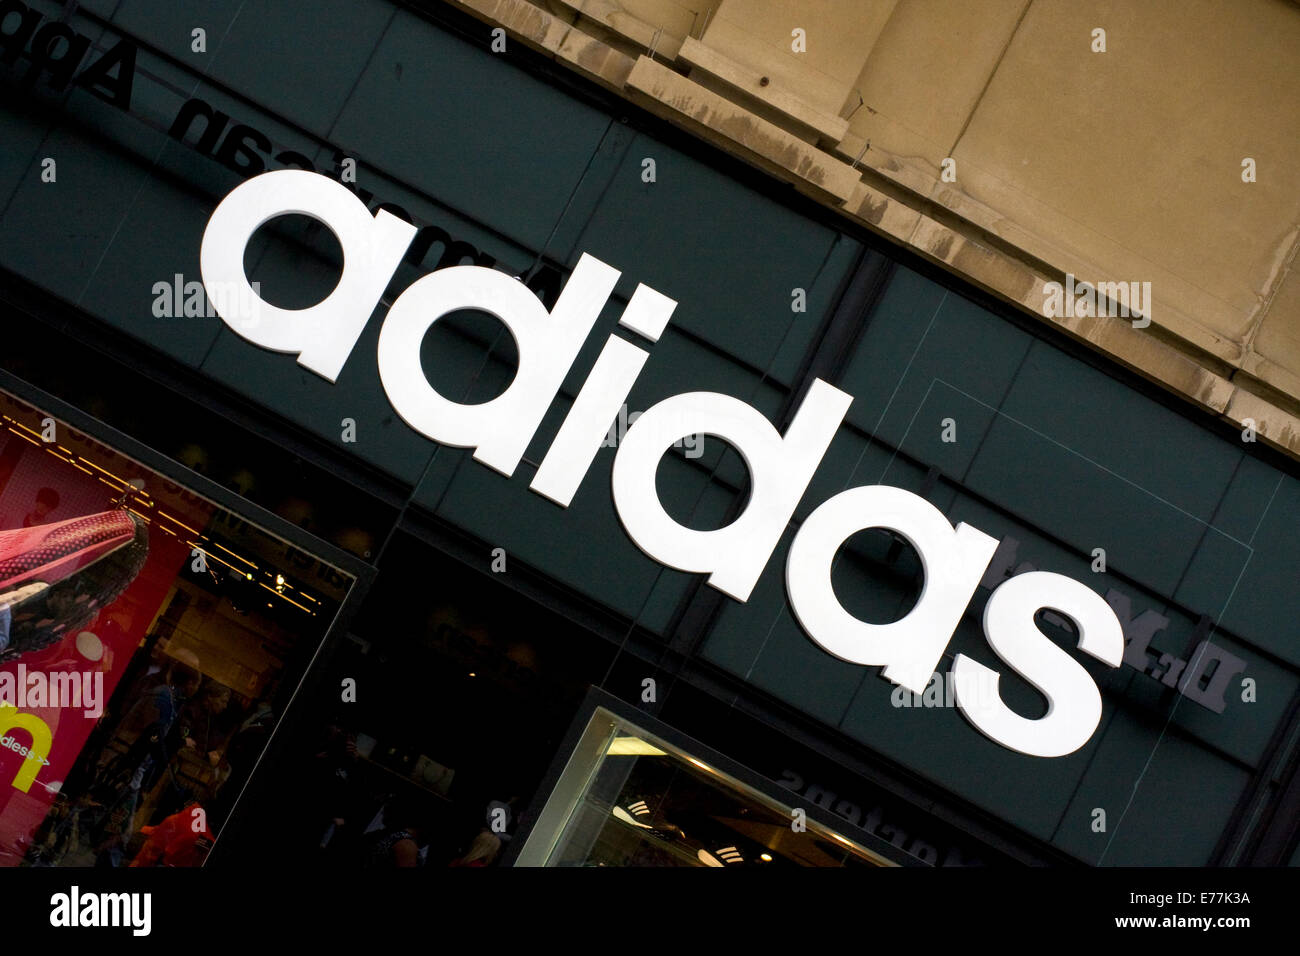 Adidas High Street Sportsware Shop - Stock Image